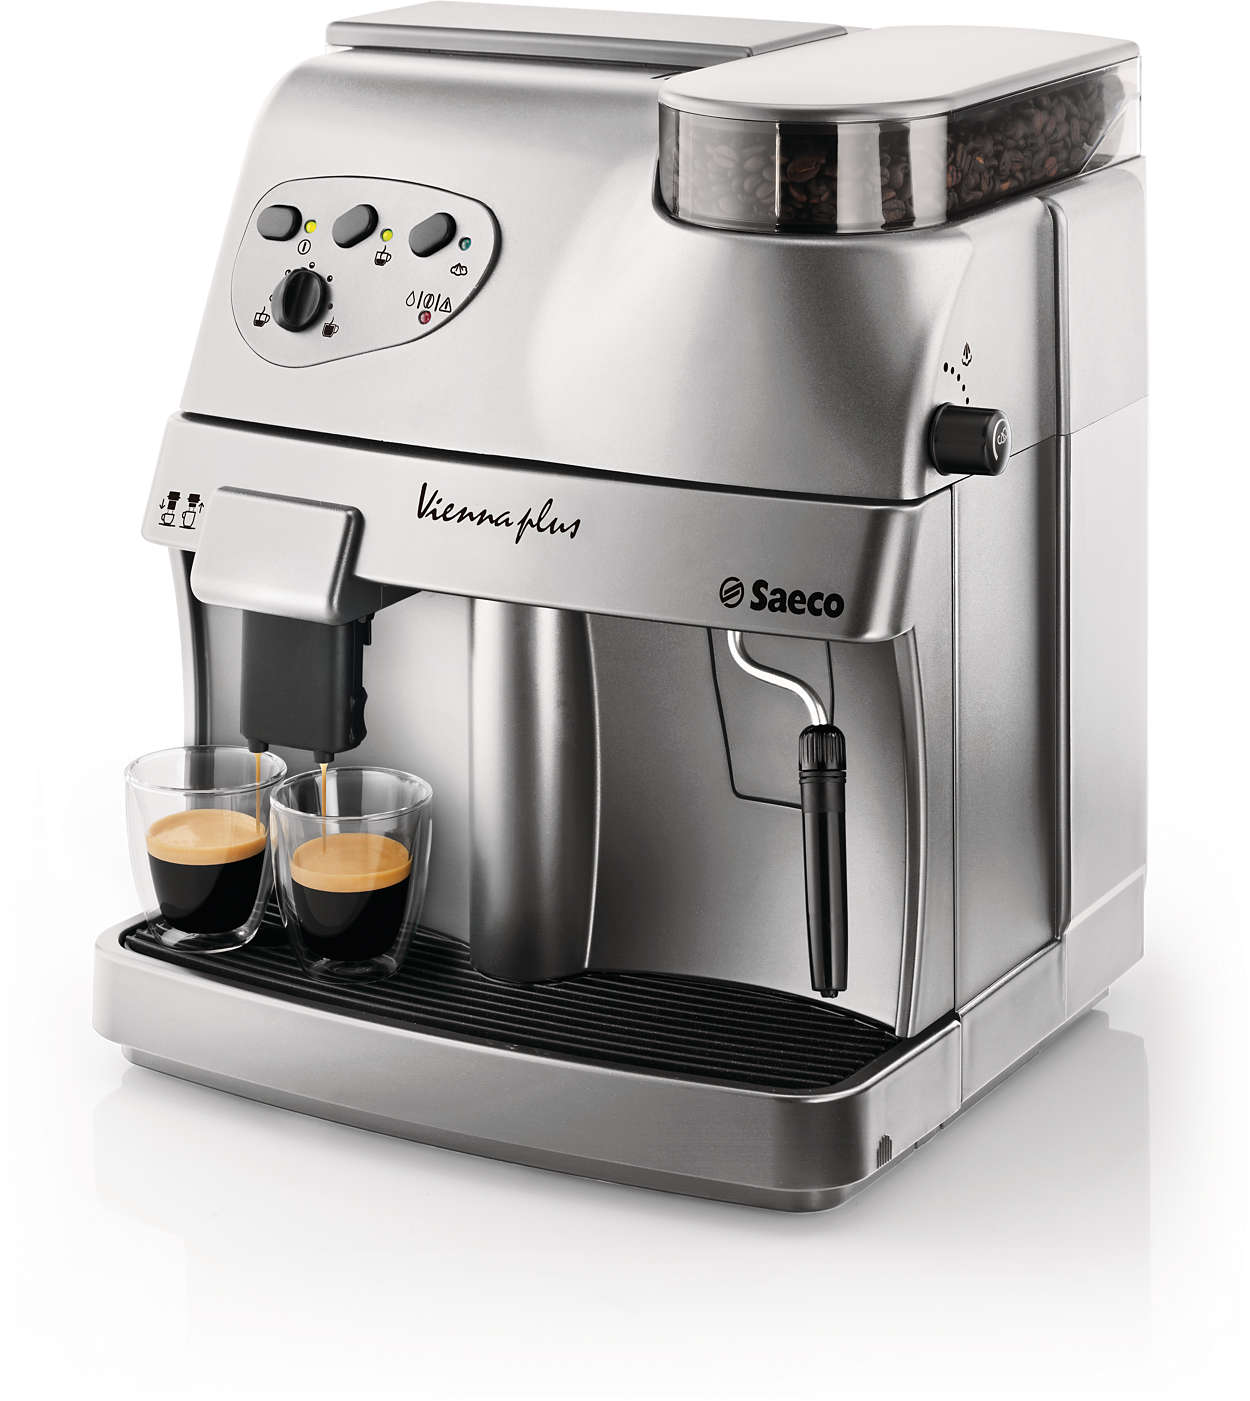 vienna super automatic espresso machine ri9737 20 saeco. Black Bedroom Furniture Sets. Home Design Ideas